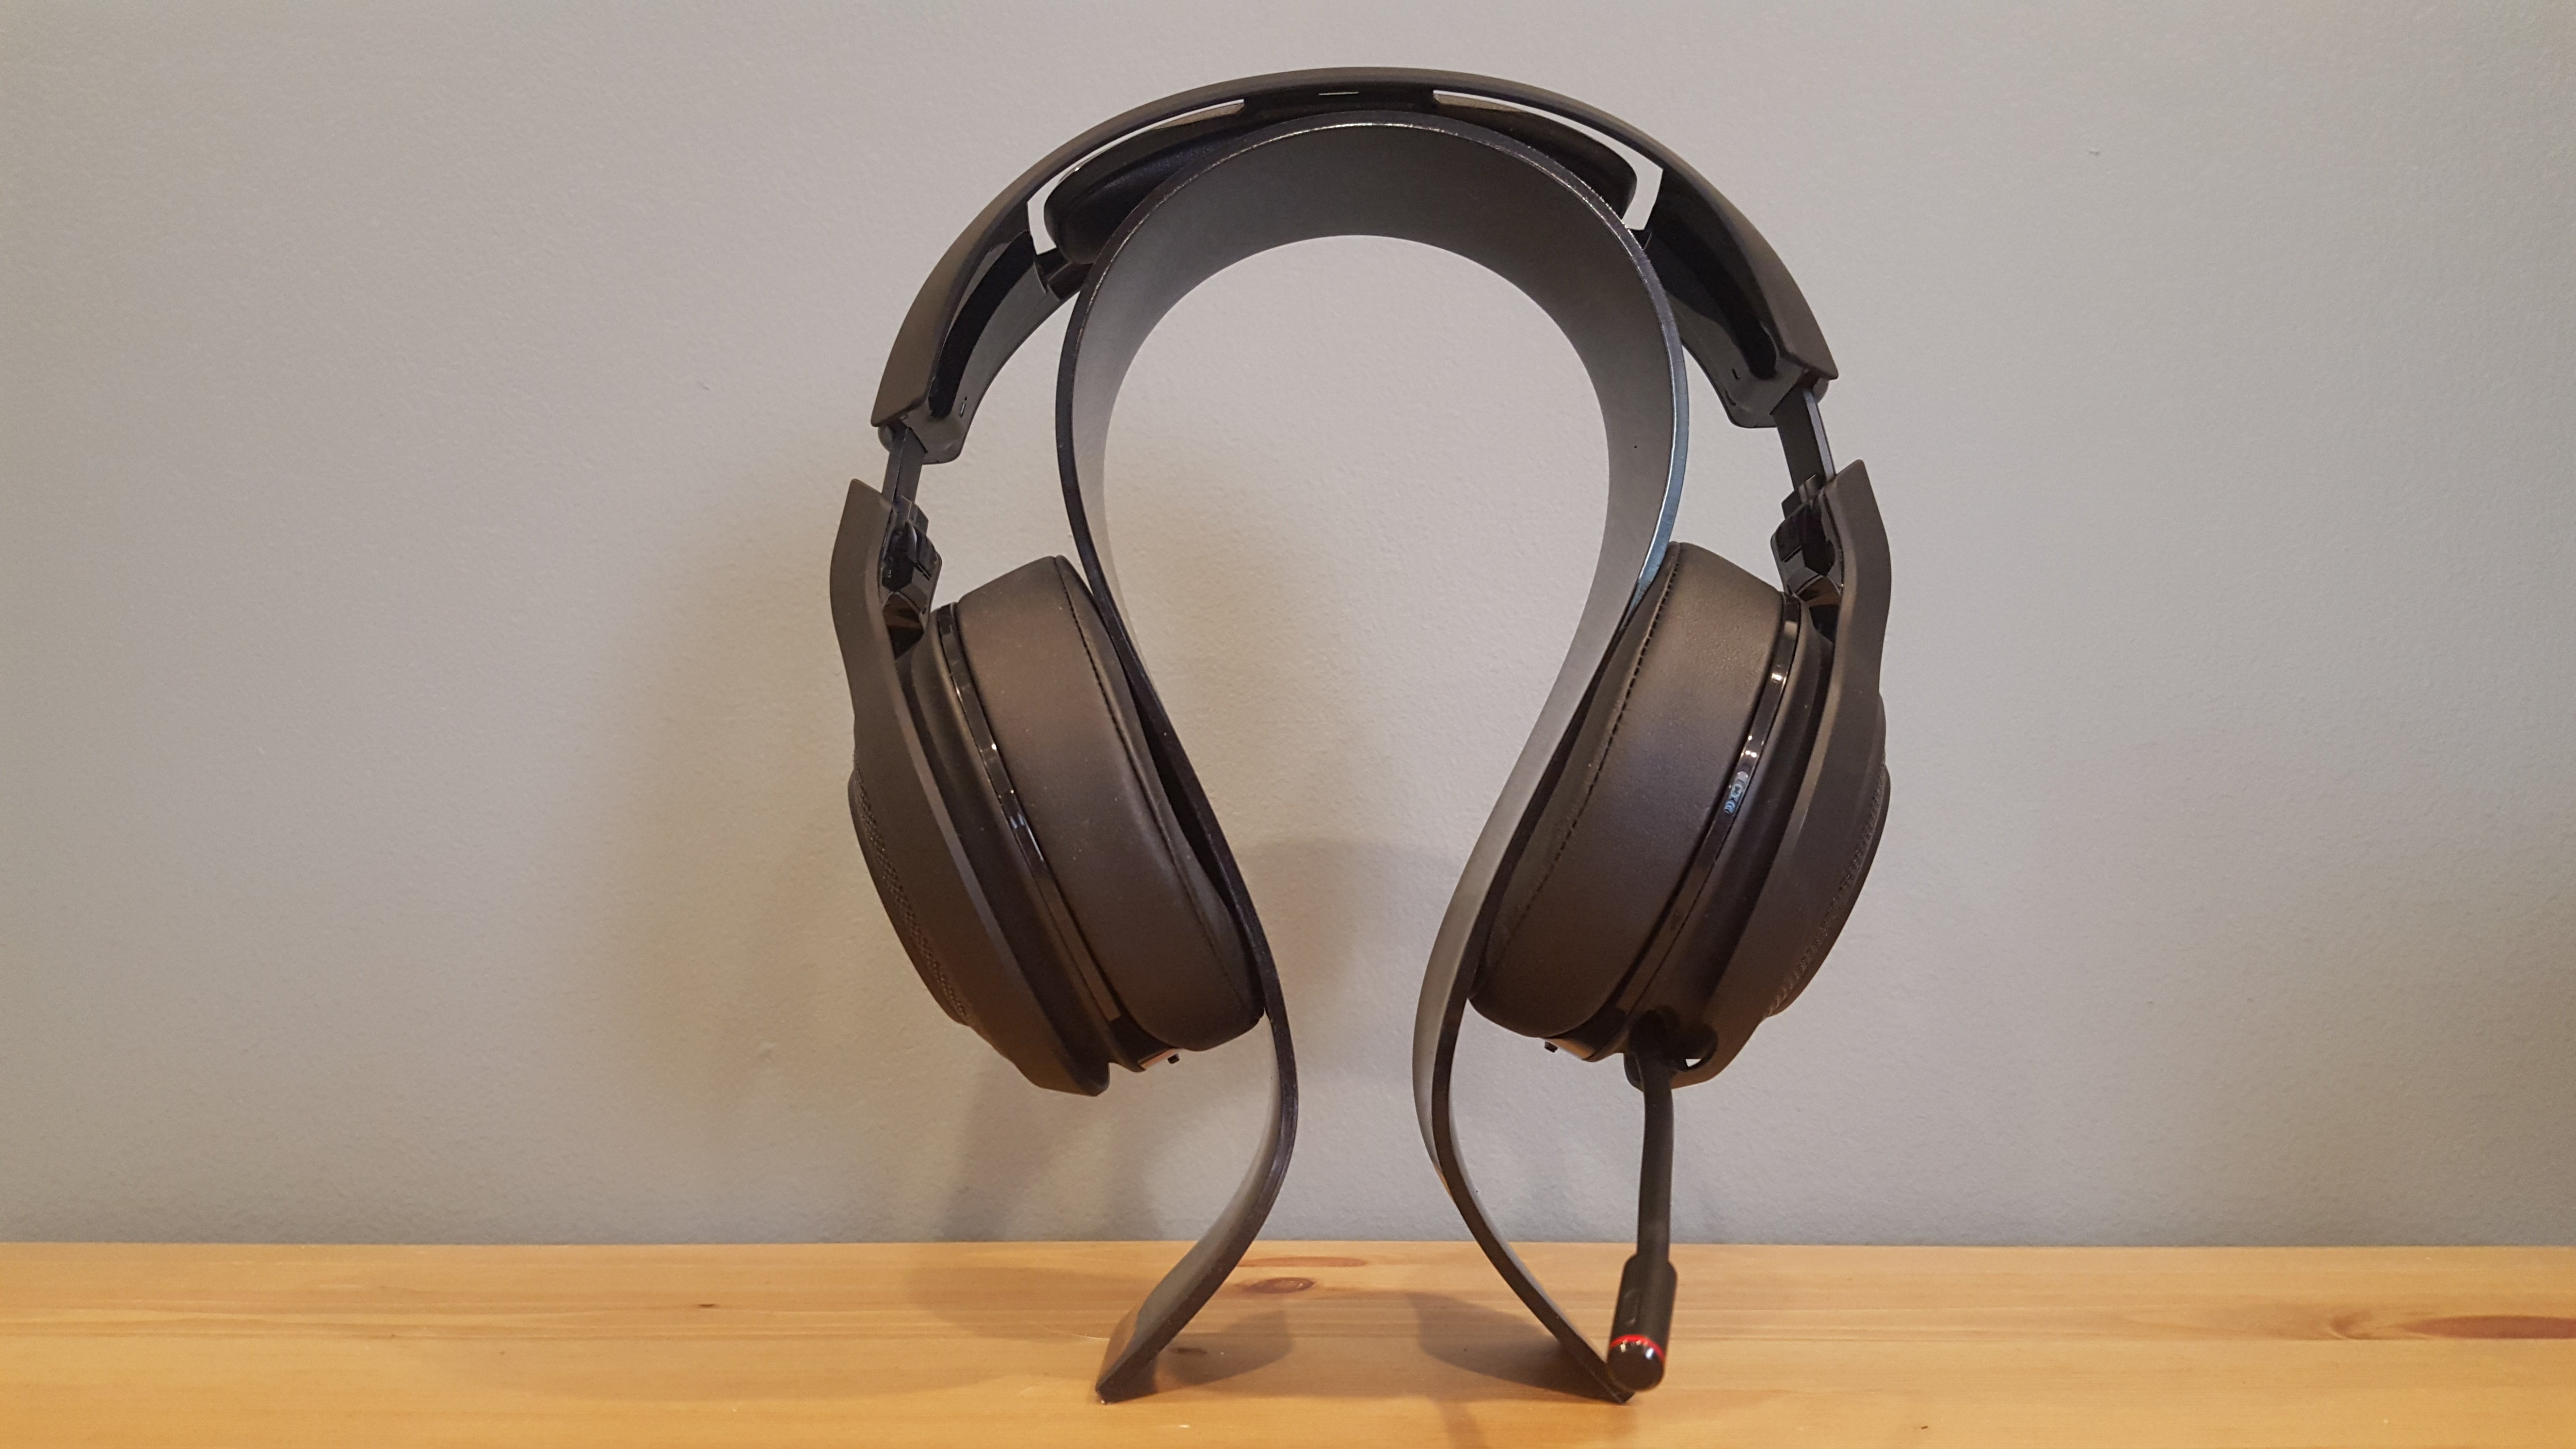 Razer Man O War Review This Pillowy Headset Is Almost As Mighty Sound Quality Two Output The Comes Packaged In 10 Tons Of Fancy Packaging